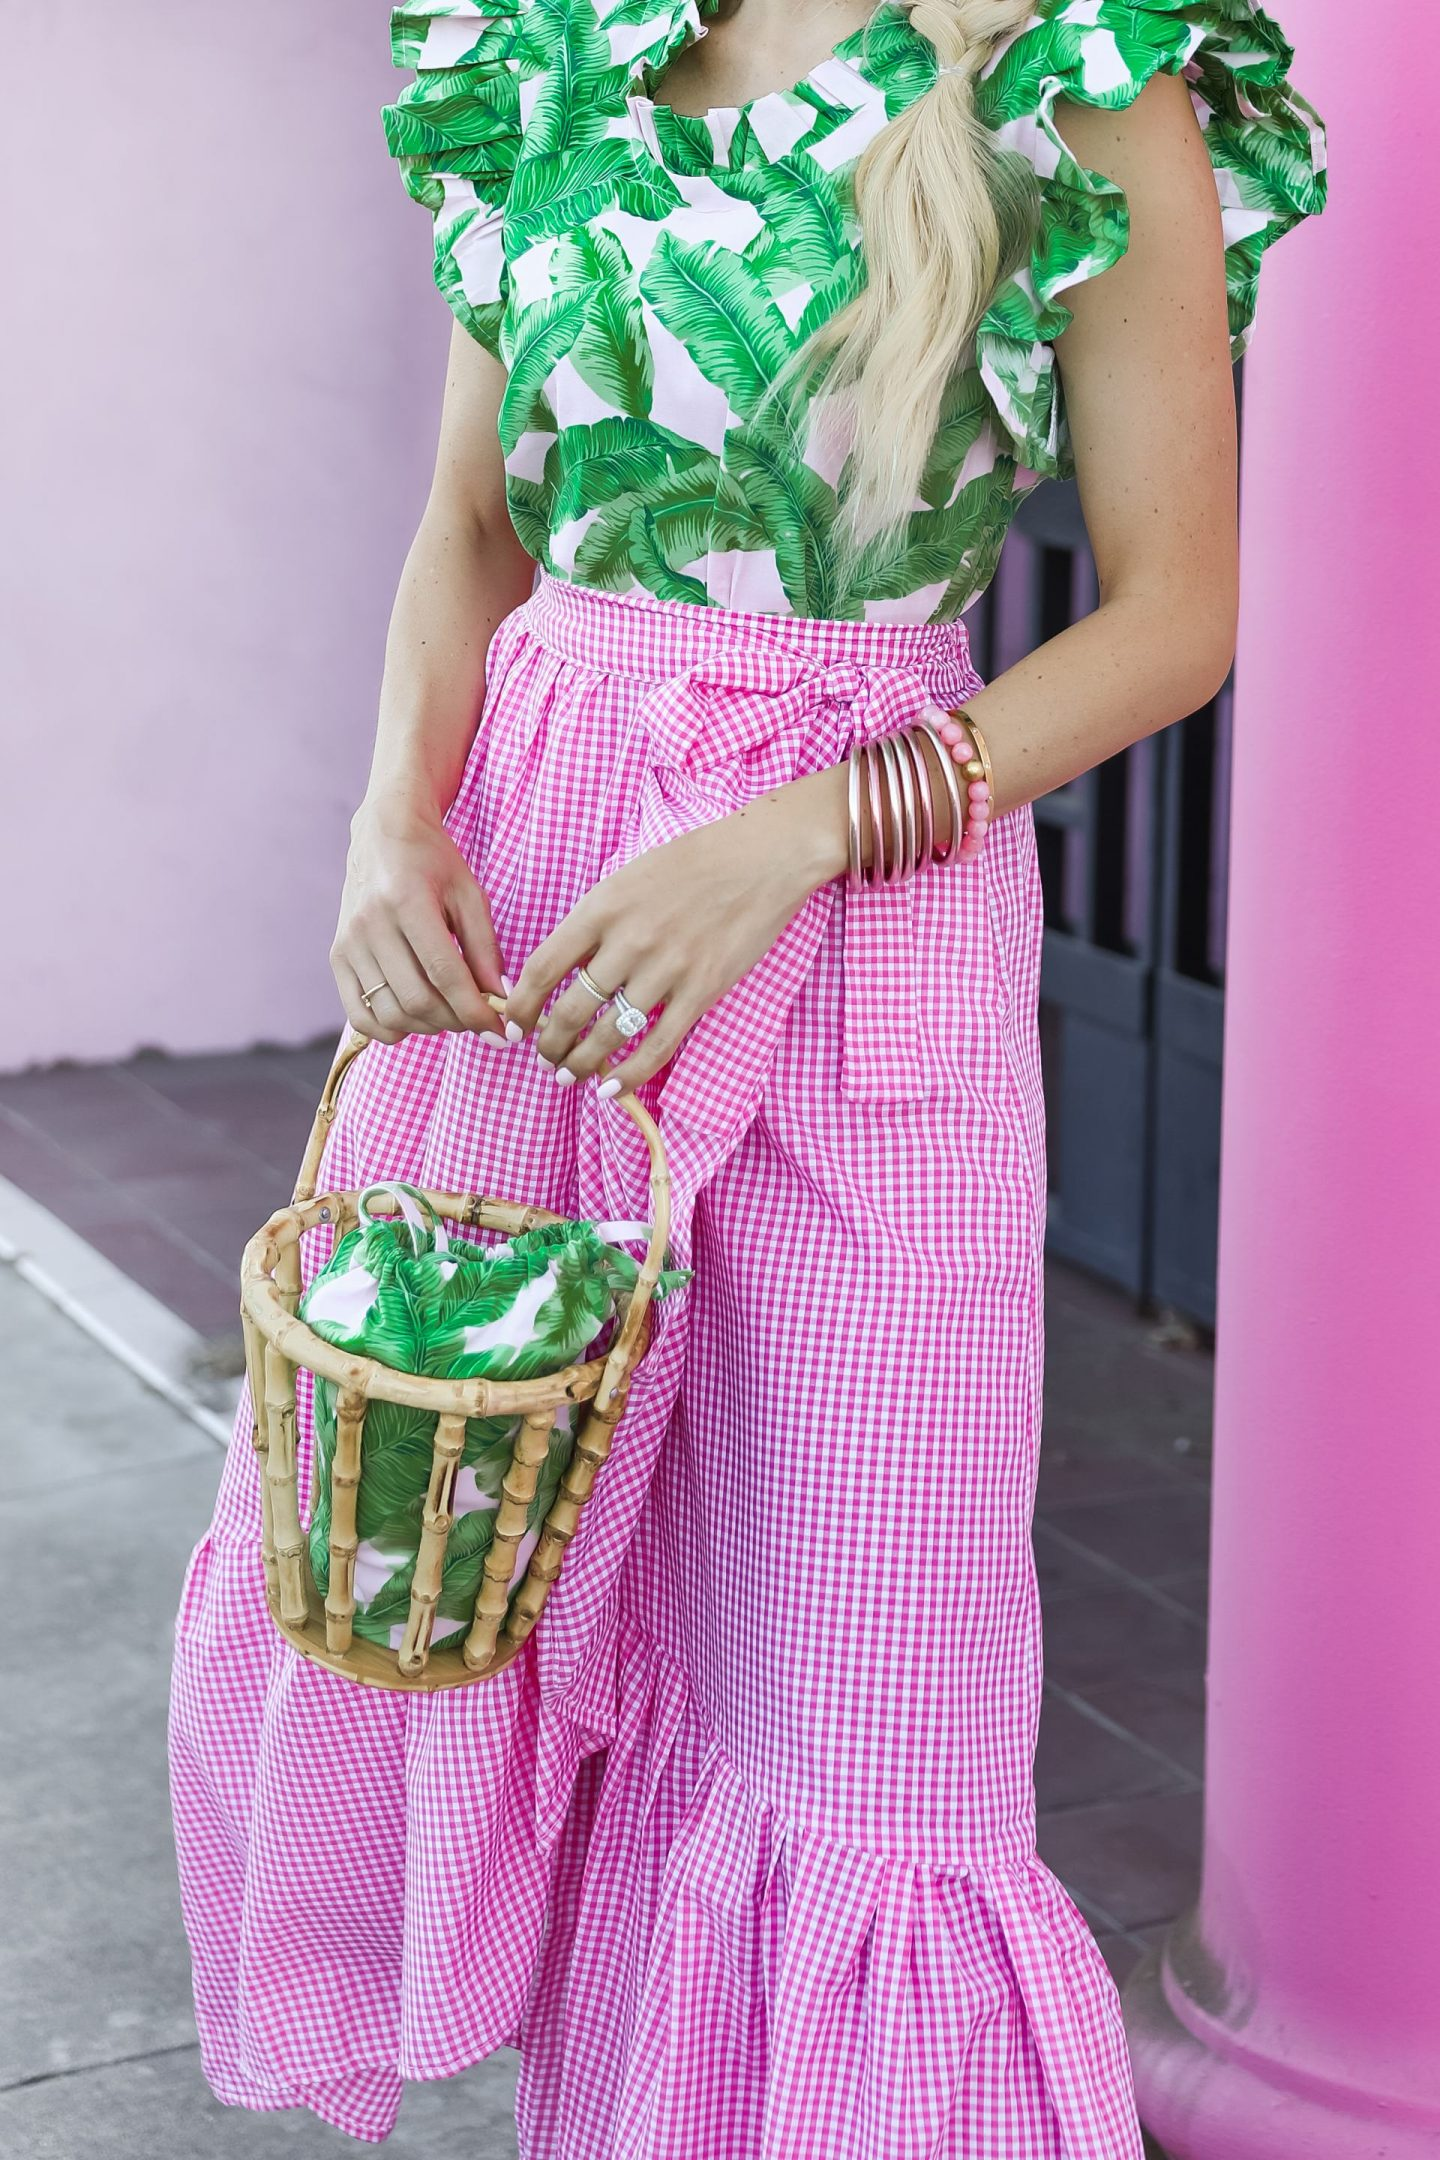 Small business spotlight on The Tiny Tassel, a black owned business. Feminine colorful style, hand crafted accessories and clothing. By Lombard and Fifth Veronica Levy.